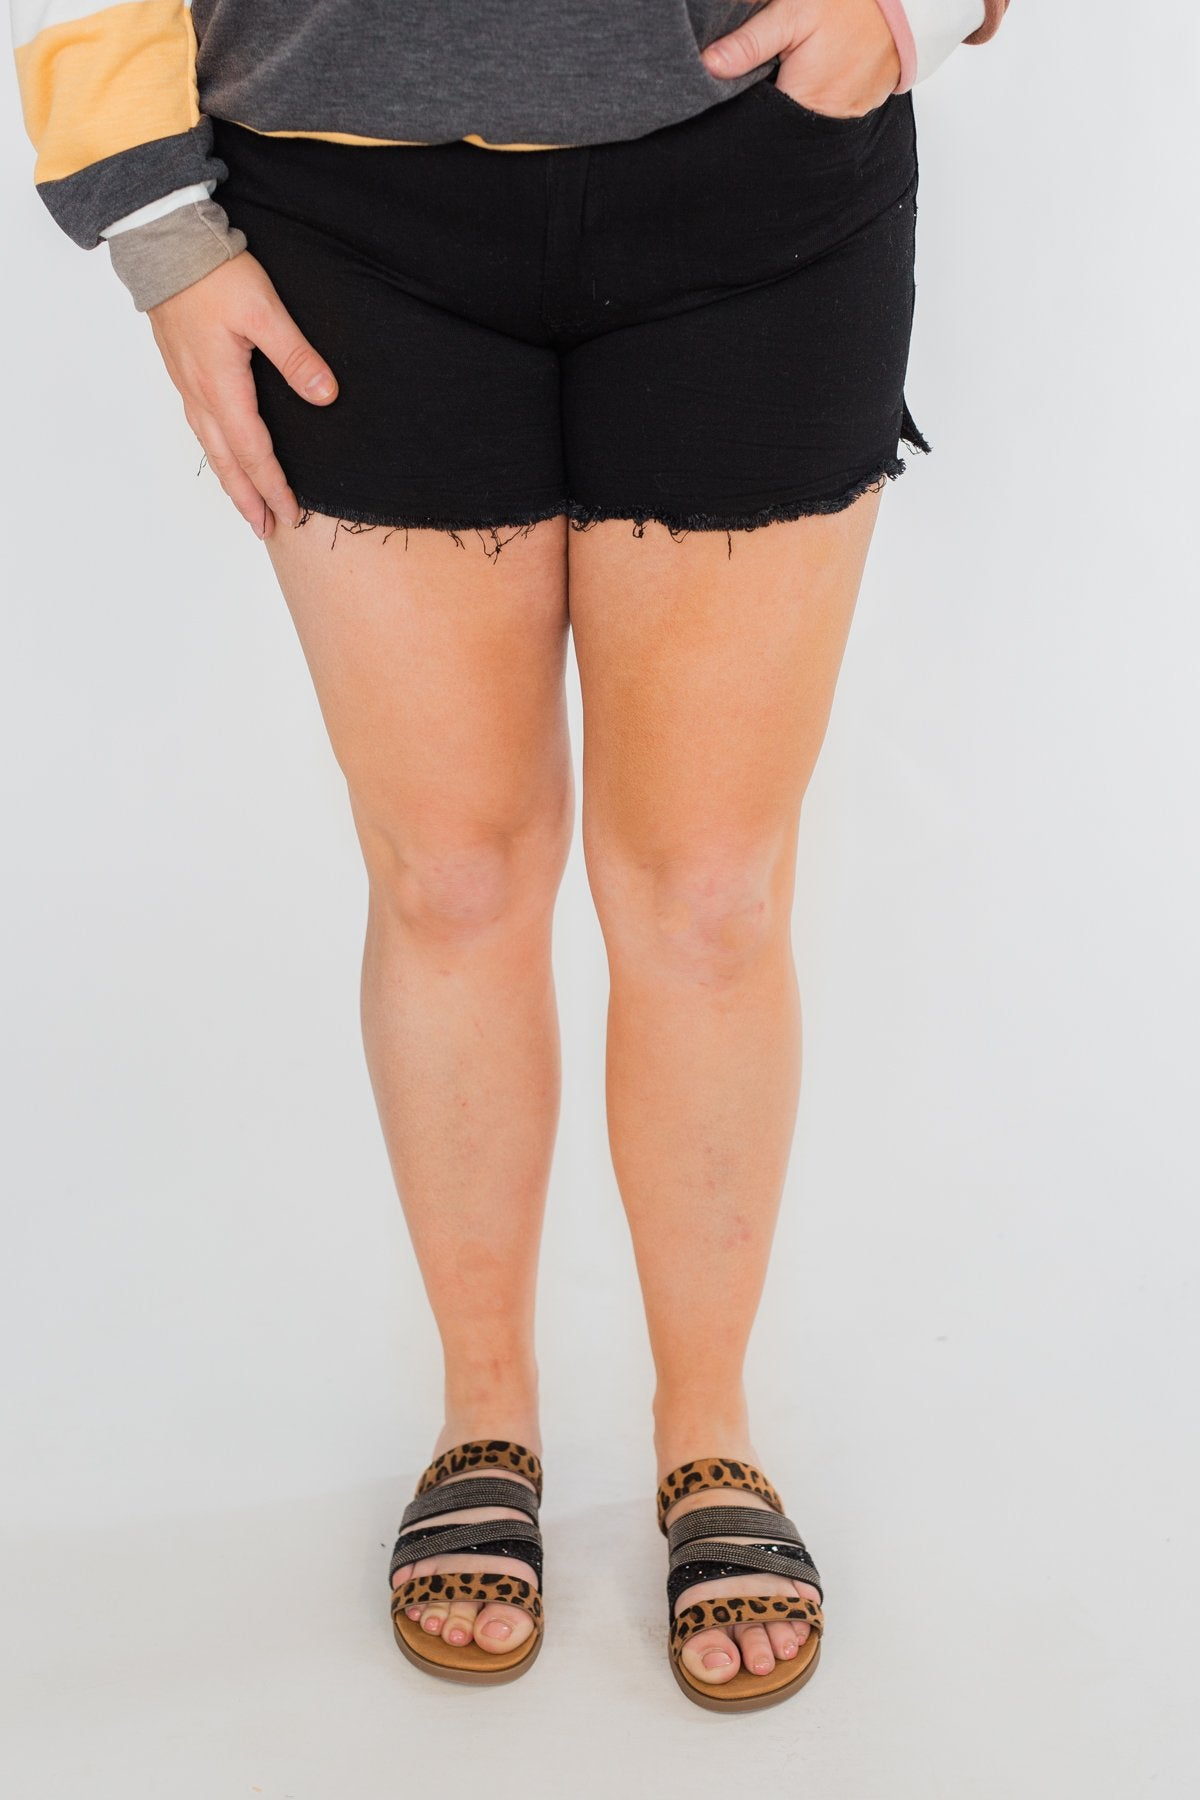 KanCan Frayed Hem Shorts- Black